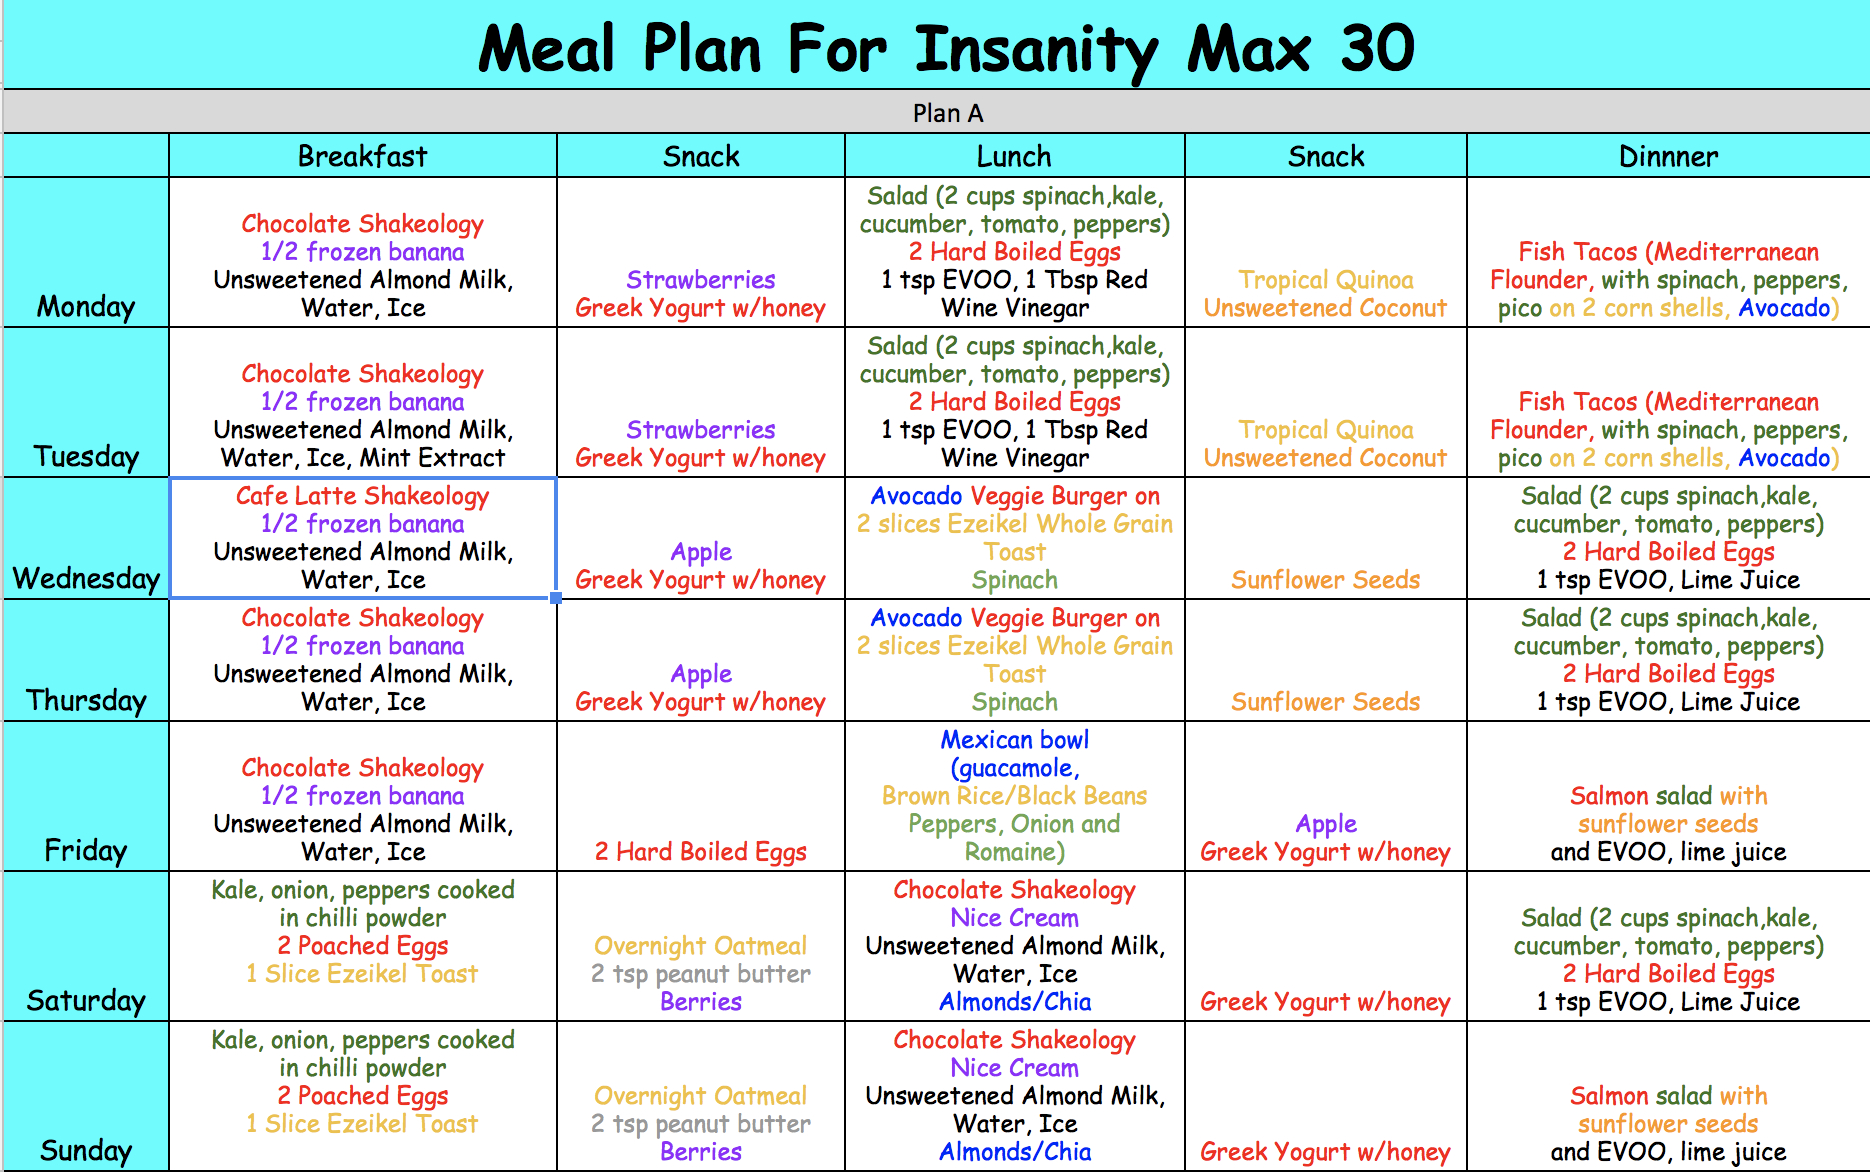 Insanity Max 30 Meal Plan  Focused On Fitness throughout Insanity Max 30 Calendar Month 2